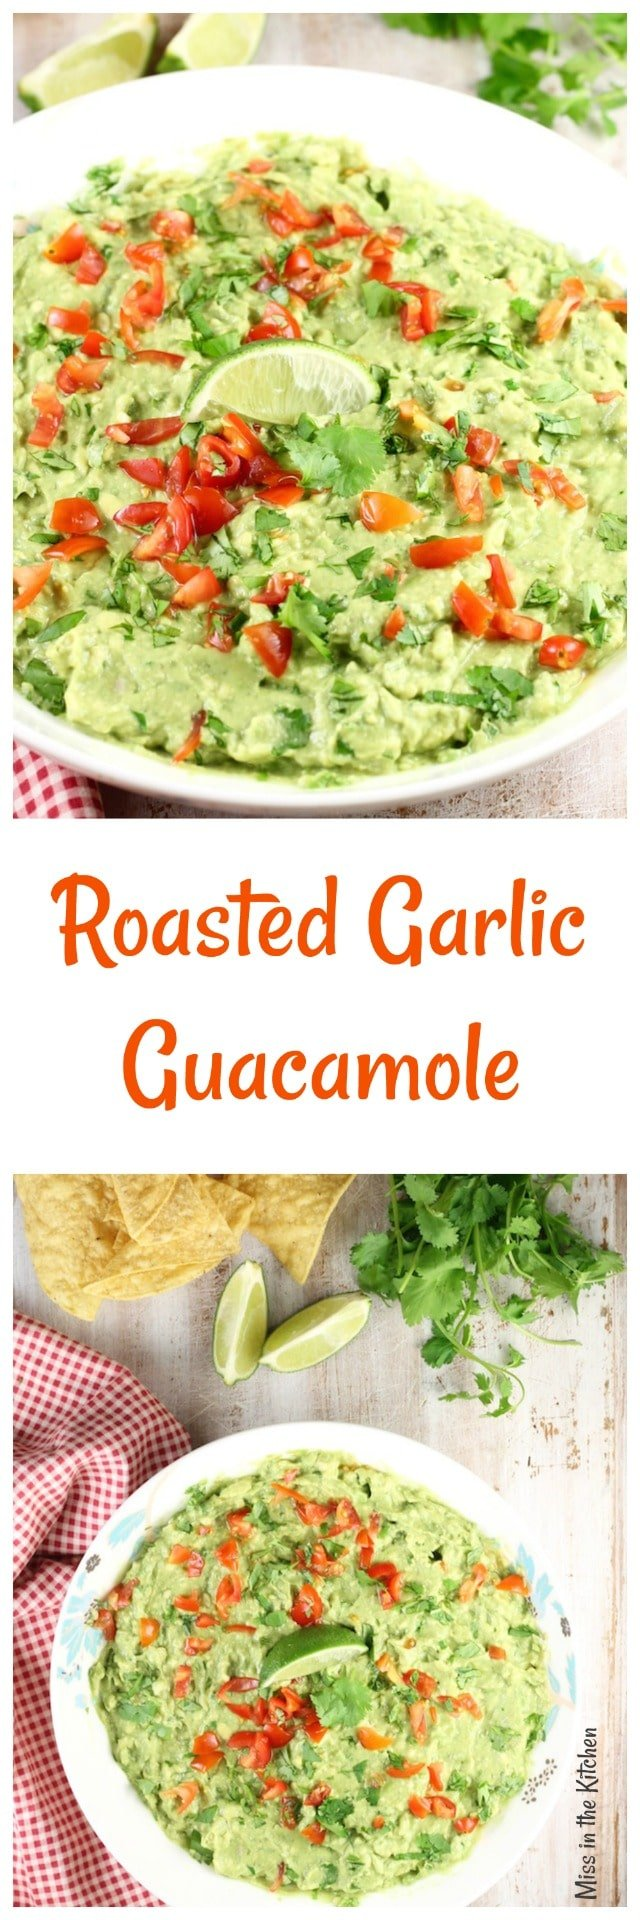 Roasted Garlic Guacamole Recipe ~ Delicious appetizer or served with your favorite Mexican dishes from MissintheKitchen.com